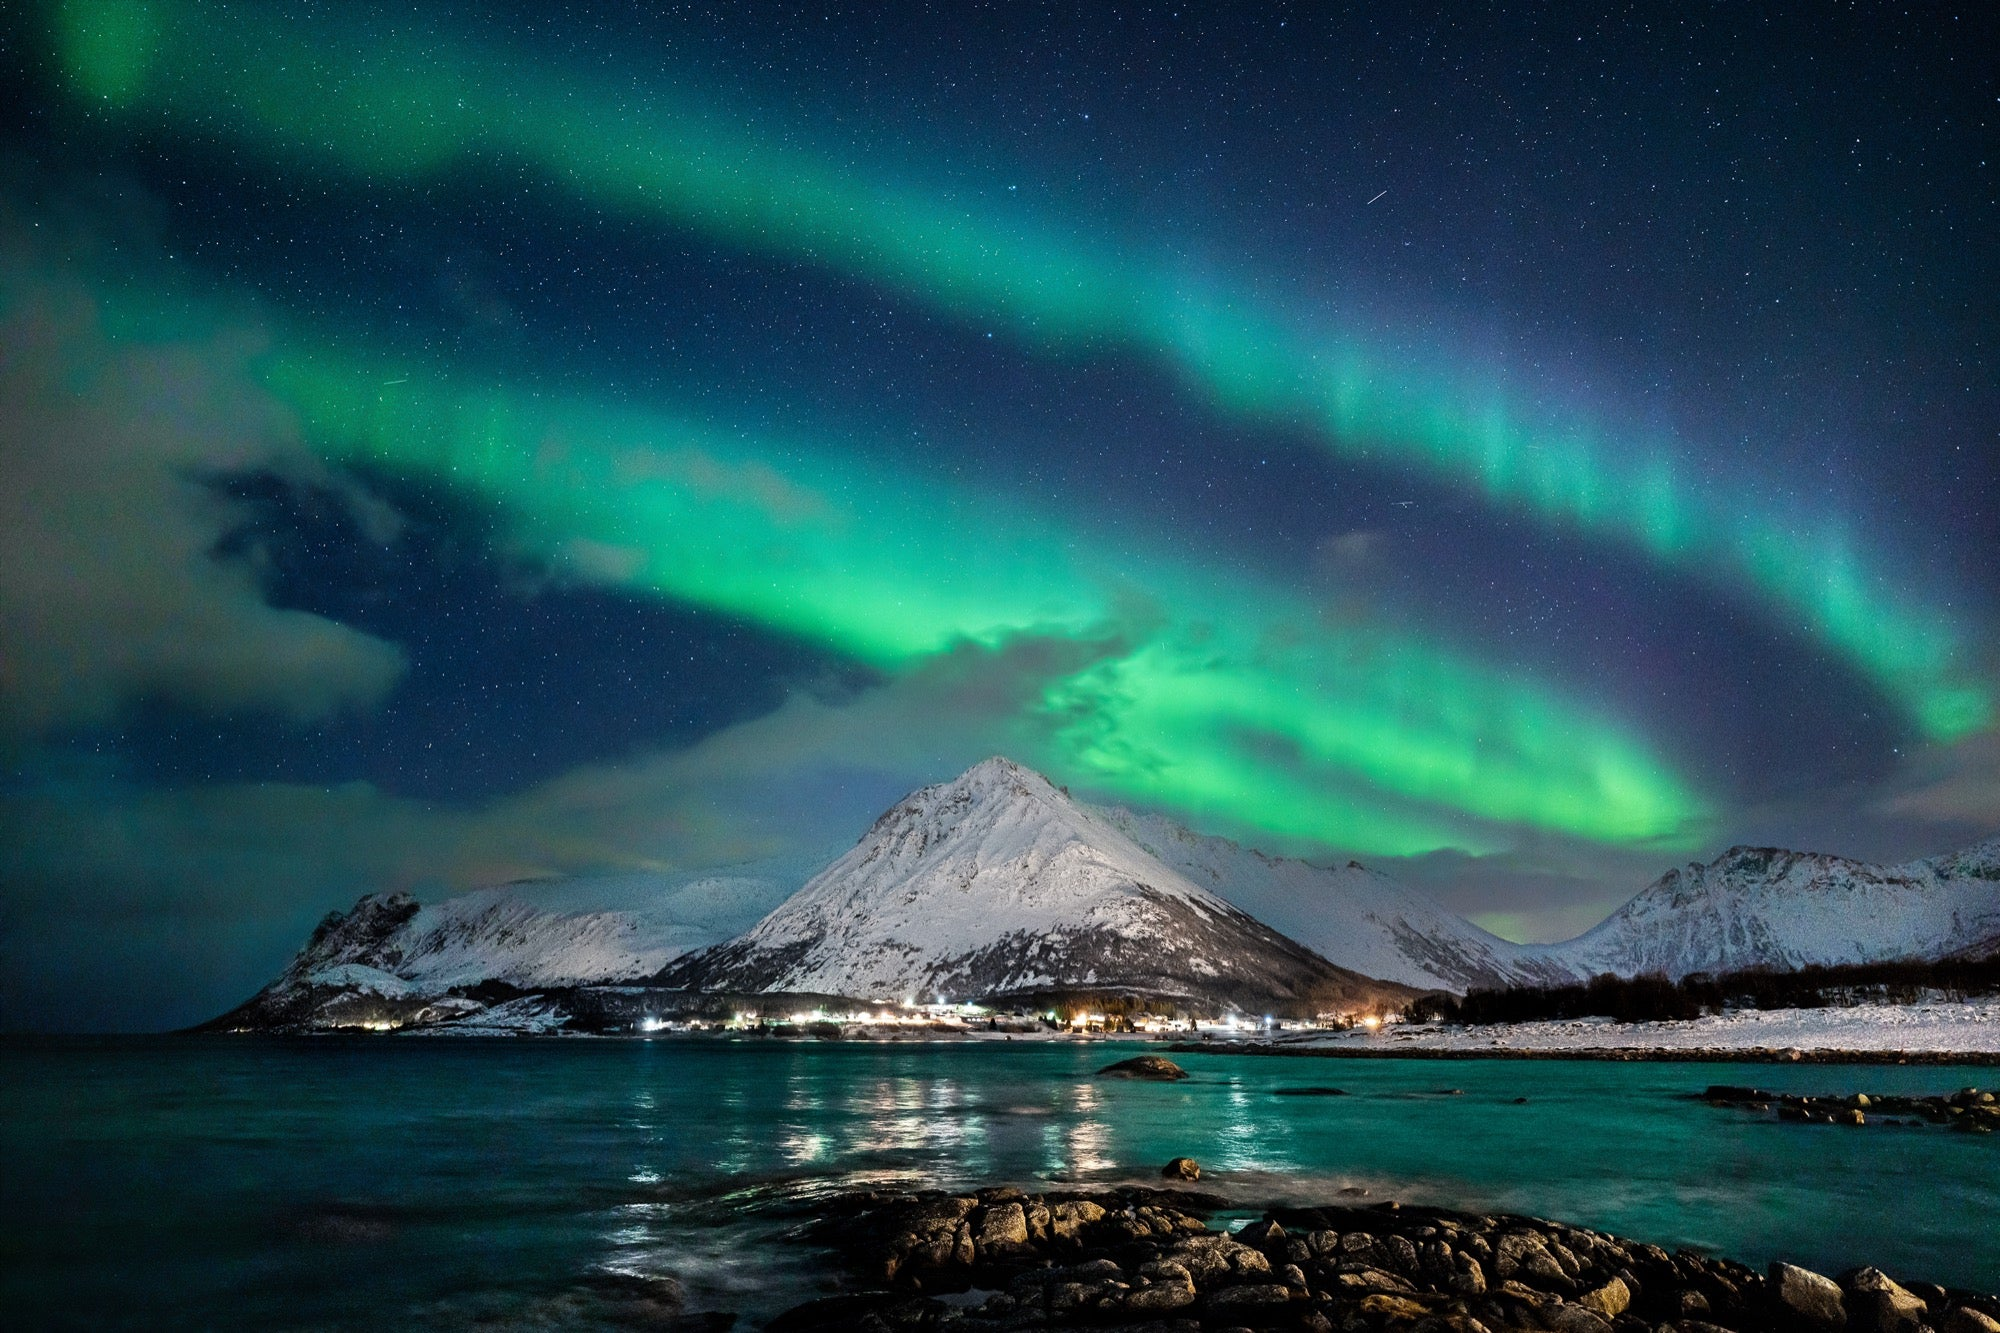 Alpha-Universe-Auroras-20mm-F18-G-photo-by-Autumn-Schrock-autumnschrock_aurora_landscape.jpg